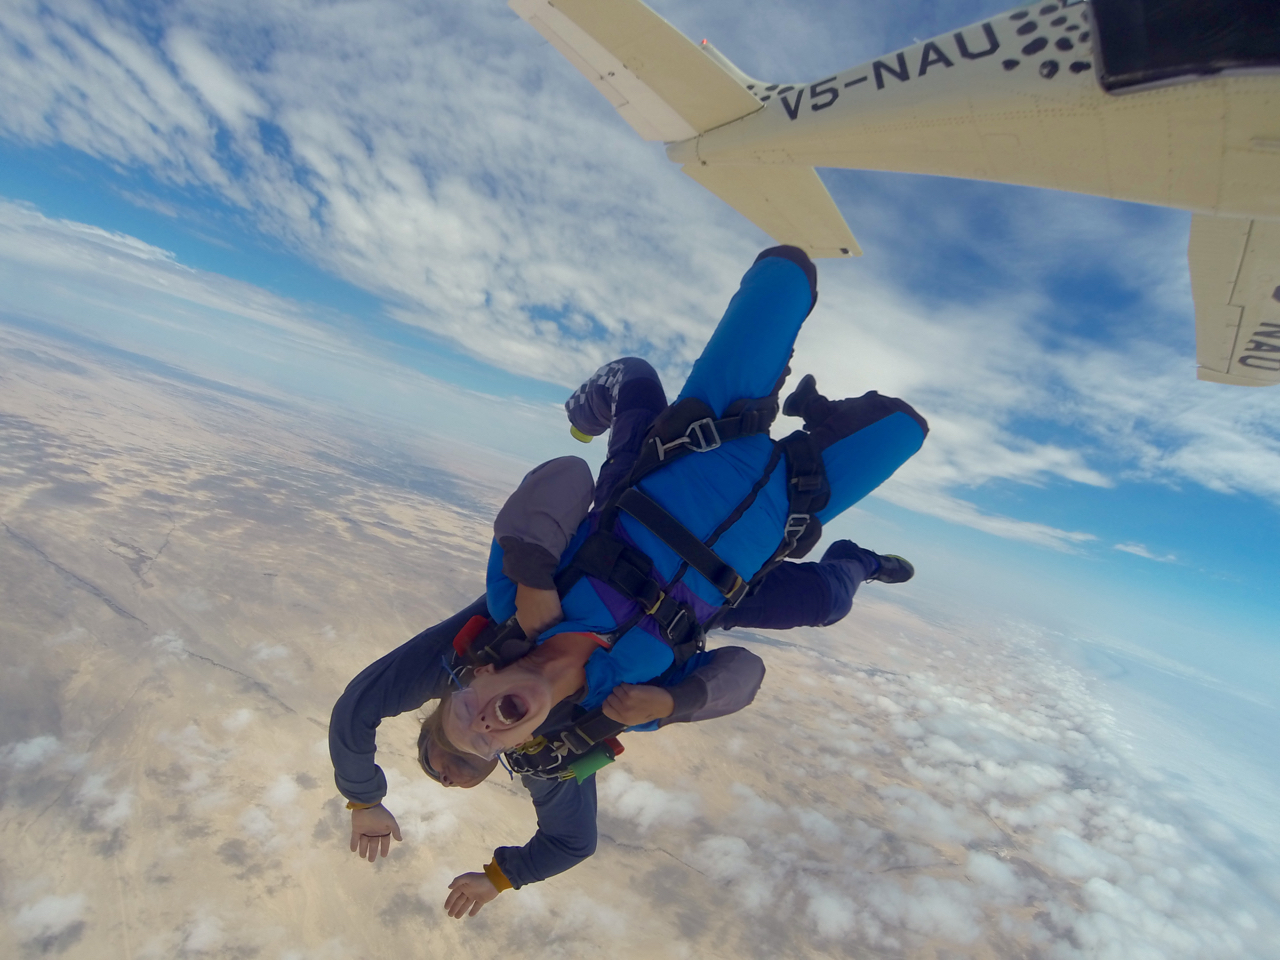 skydiving me 3.jpg